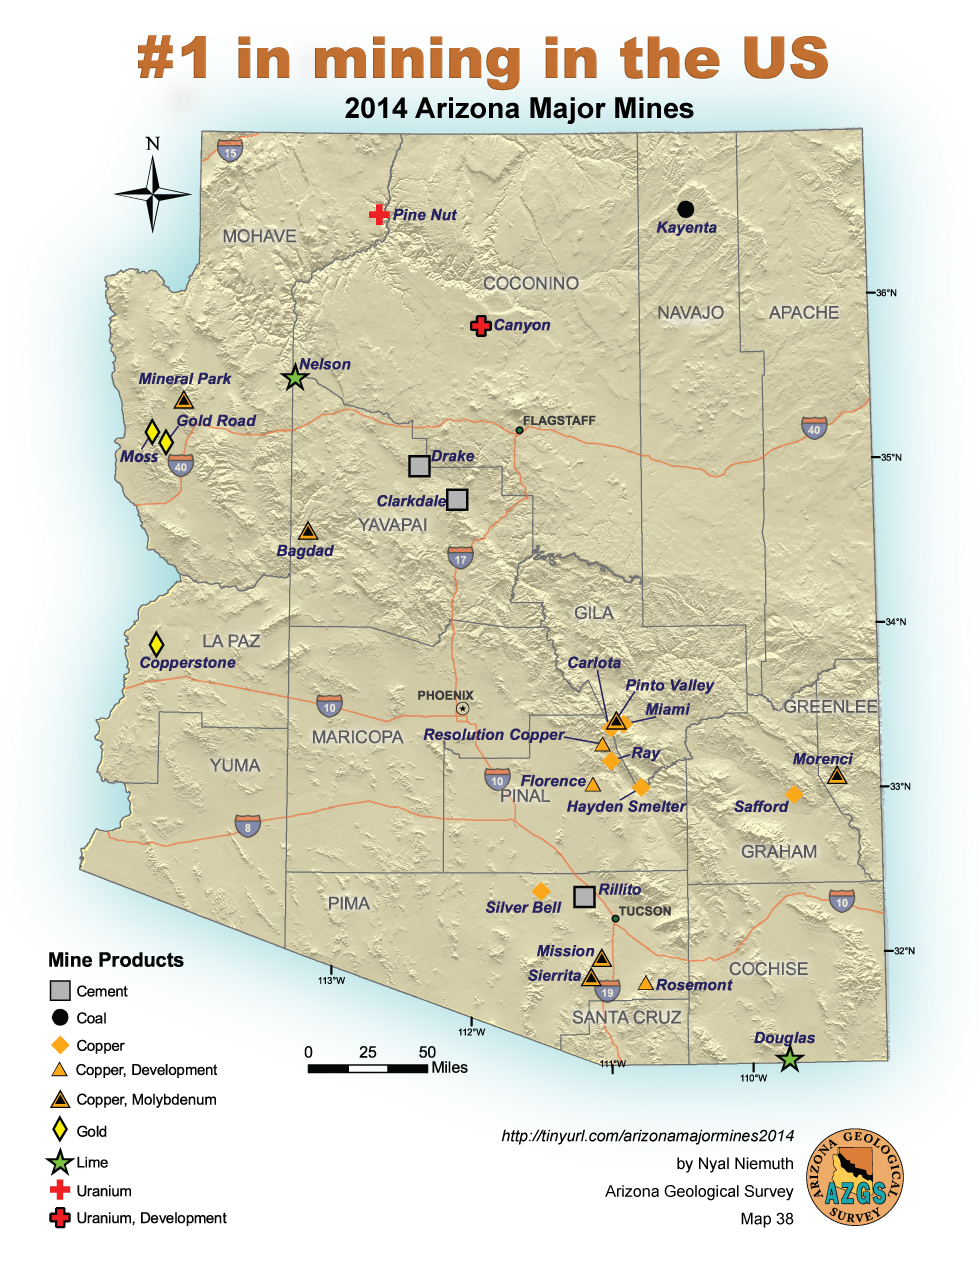 Arizona is #1 mineral producing state